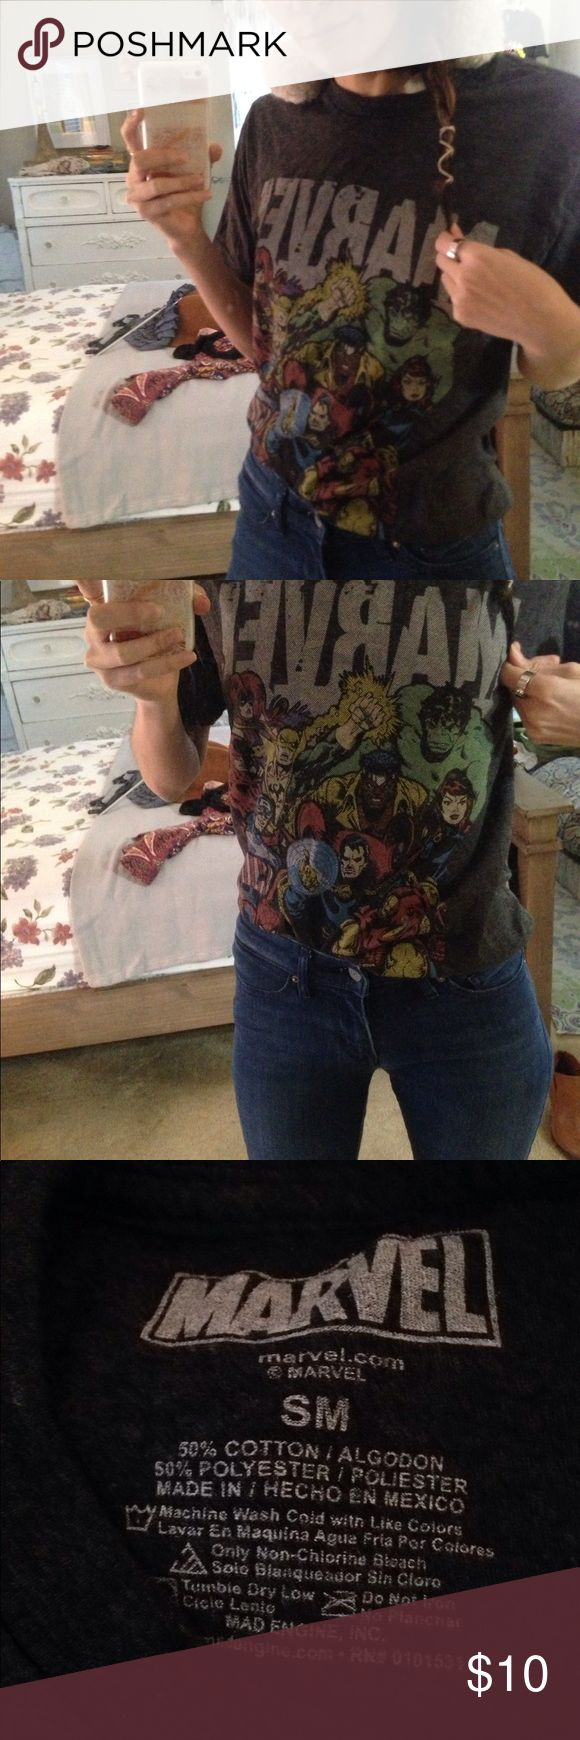 Marvel comic tee small Marvel comic tee sz S good condition from target. Juniors sizing. Tops Tees - Short Sleeve